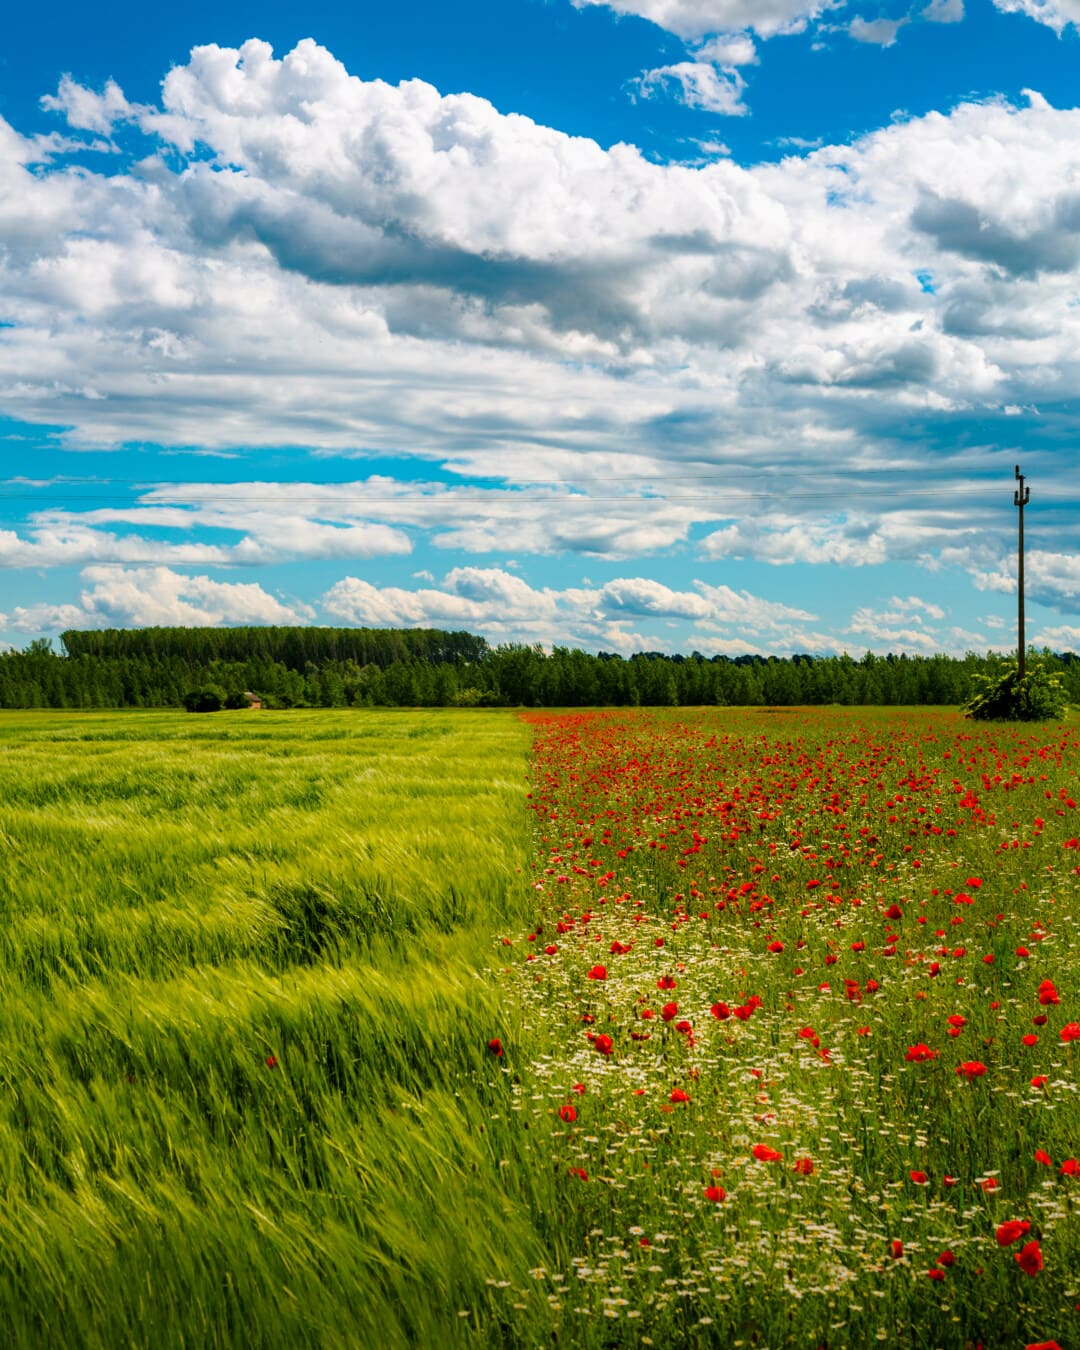 field, agriculture, perspective, wheatfield, flowers, poppy, landscape, nature, cloud, meadow